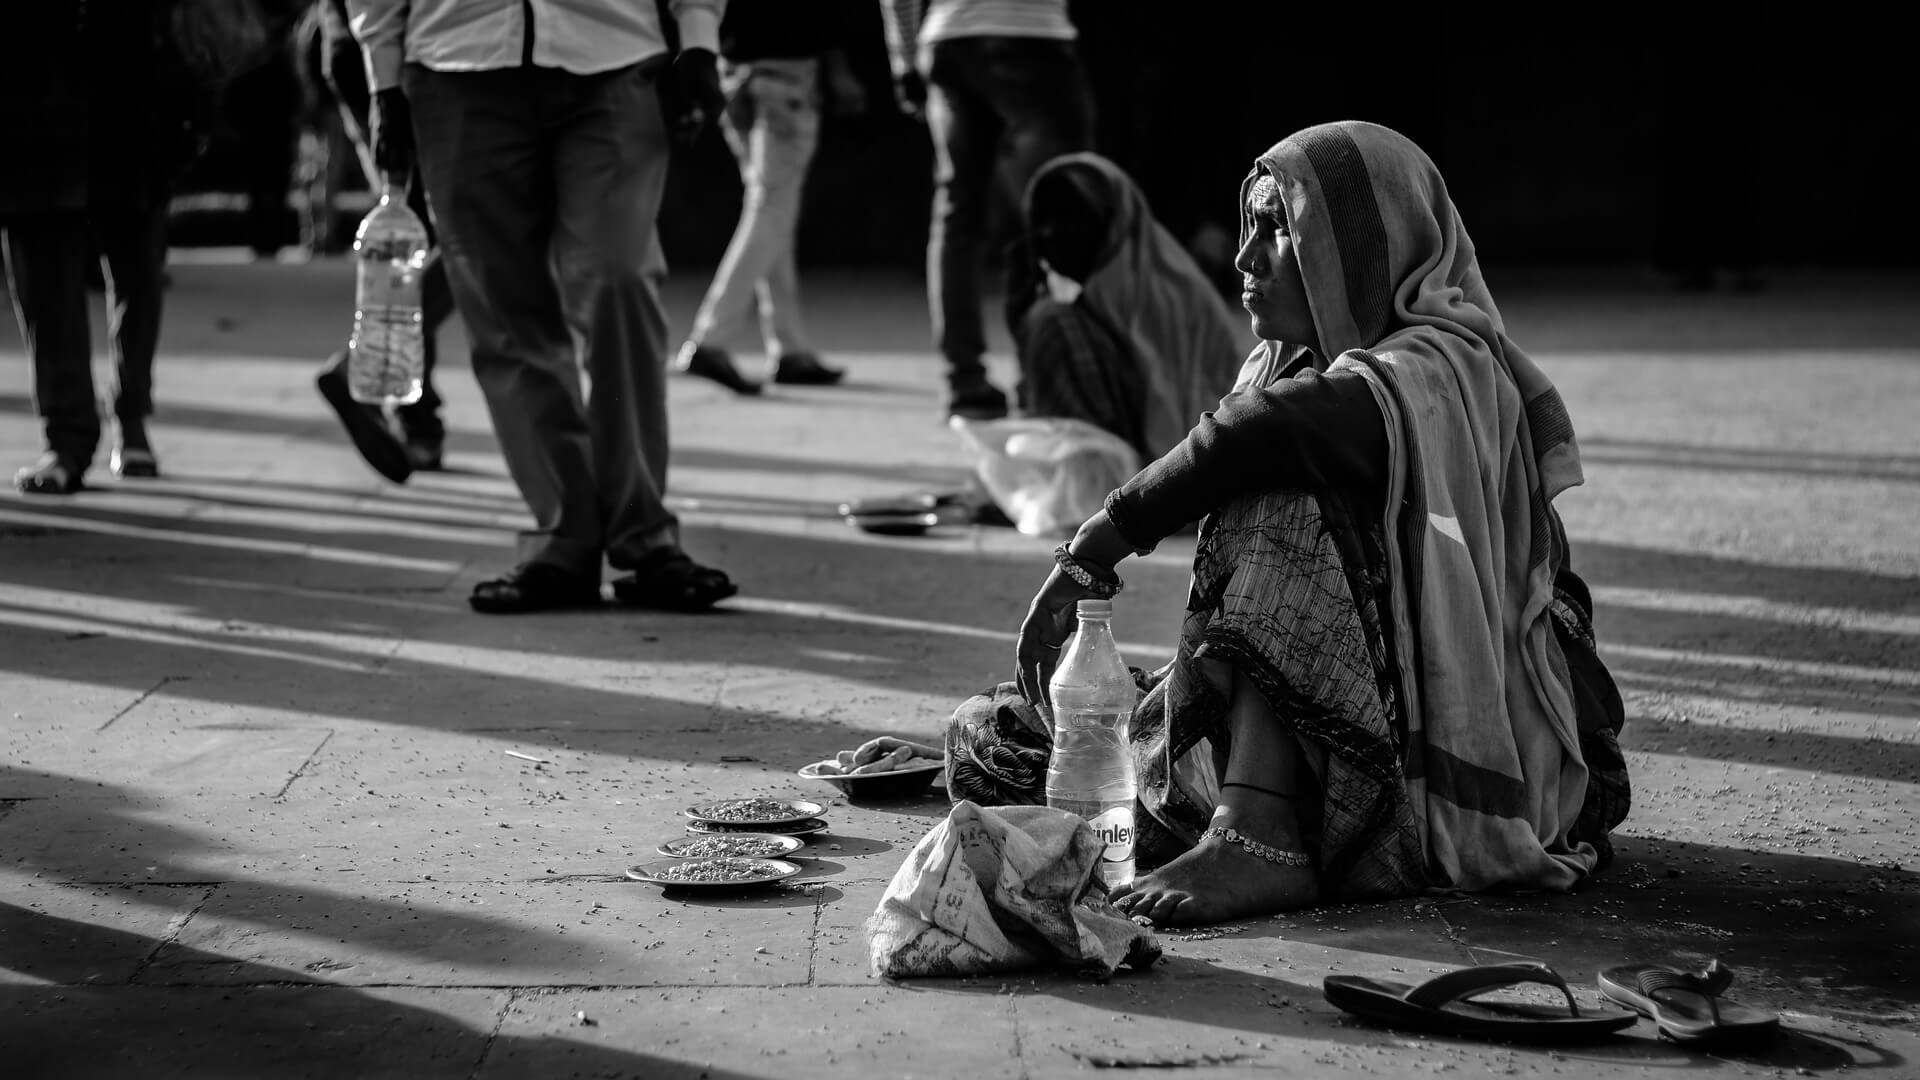 Lady Beggar Begging at the Street